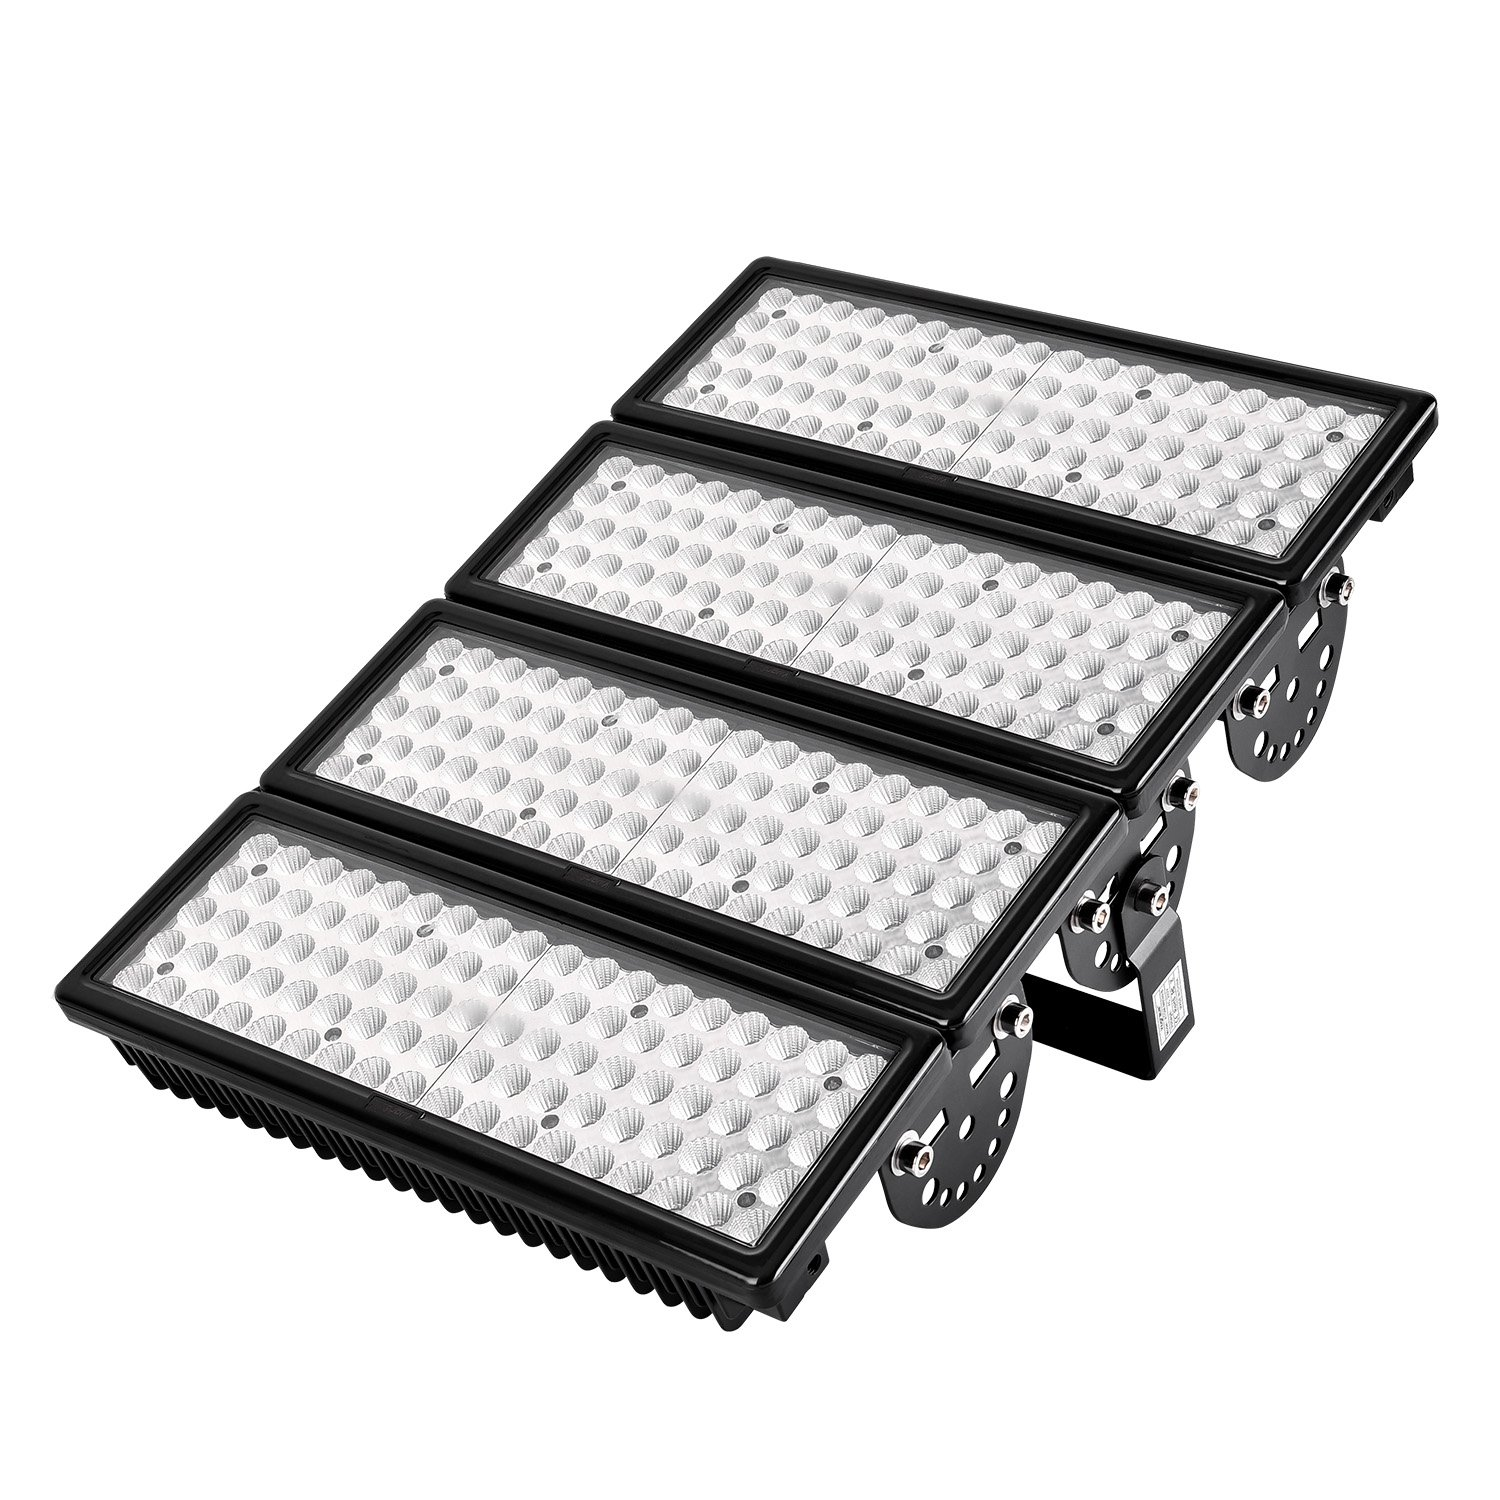 Viugreum 400W LED Flood Lights Outdoor, 40000 Lumen Daylight White(6000K) 60° Beam Angle LED Spot Lights, IP67 Waterproof Security Work Light, Stadium Light (Fast shipping from USA,only take 5-7 days)